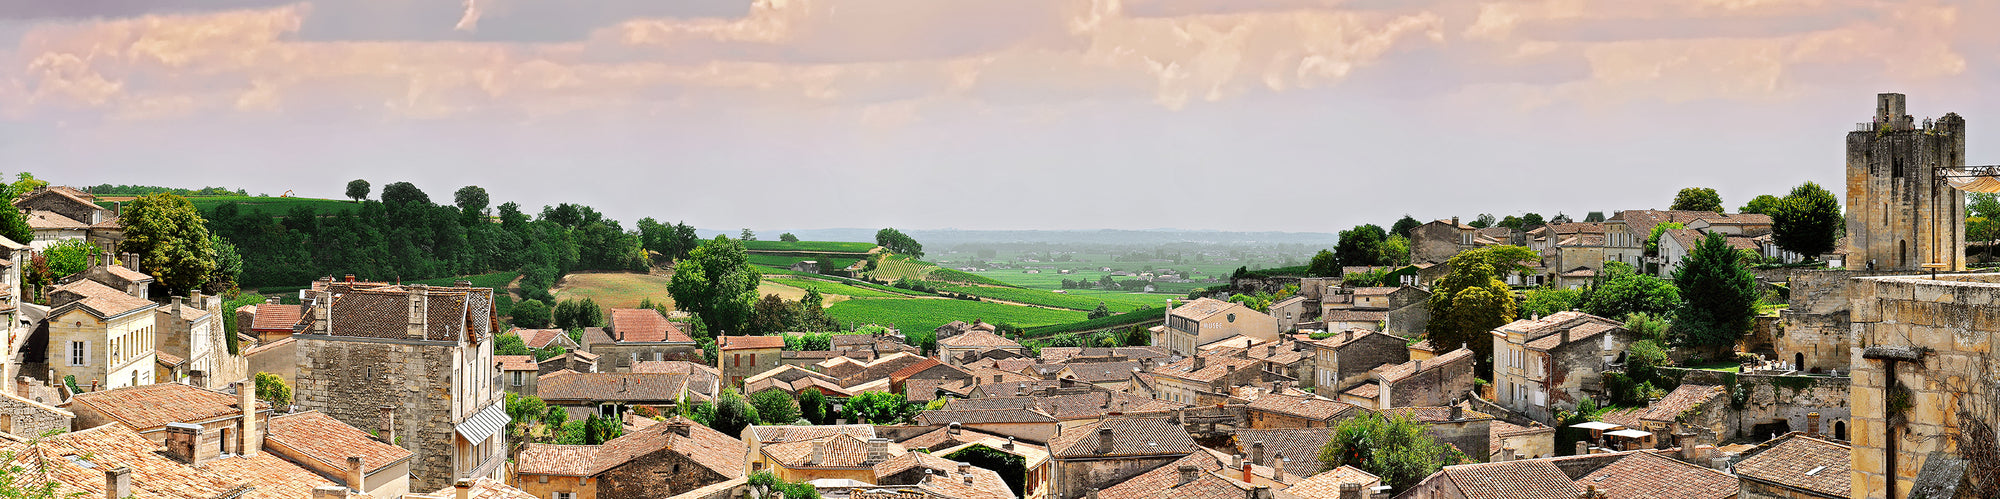 The village of Saint-Emilion (France) - Open Edition 40 cm x 160 cm